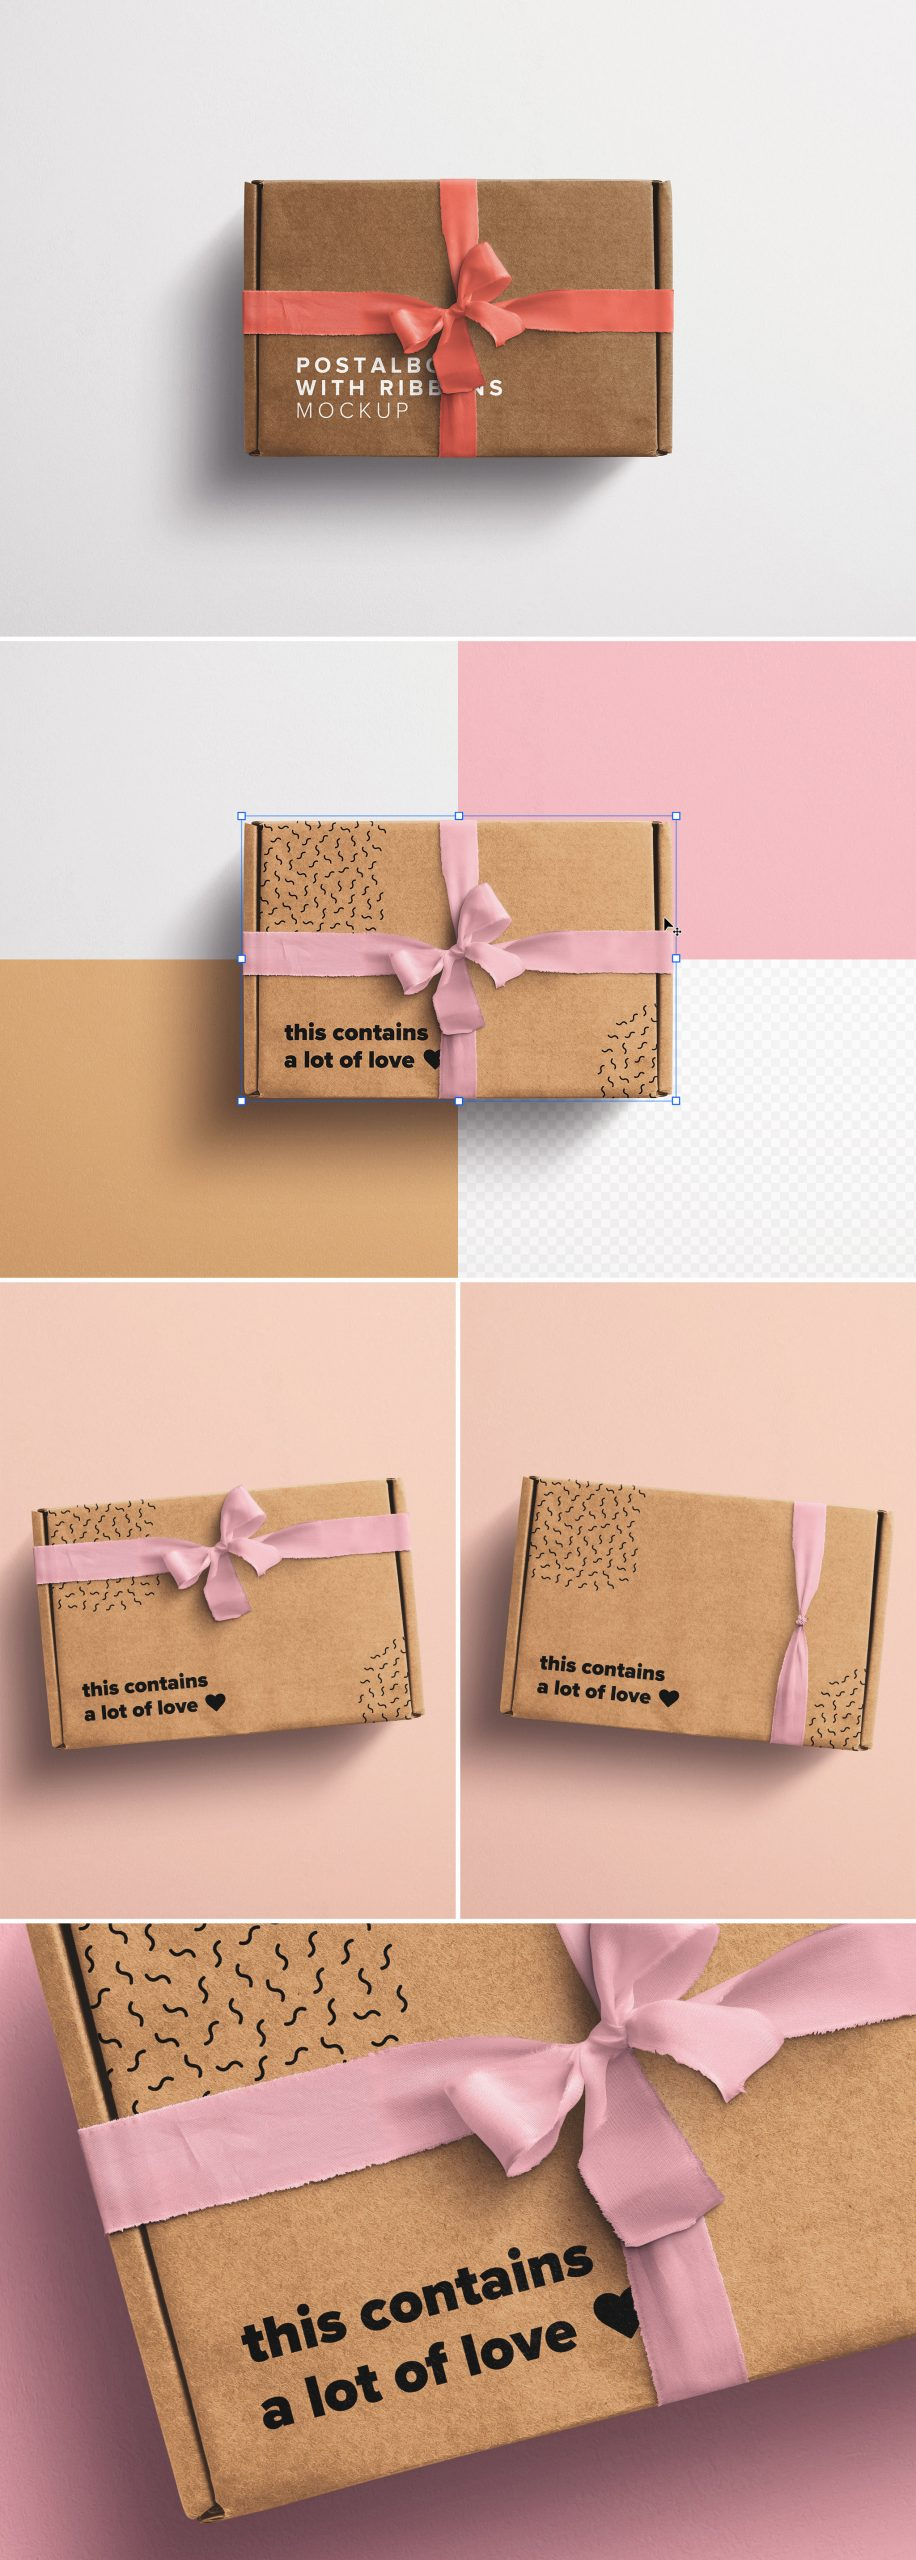 Postal Box with Bow and Ribbons Mockup 2 preview scaled